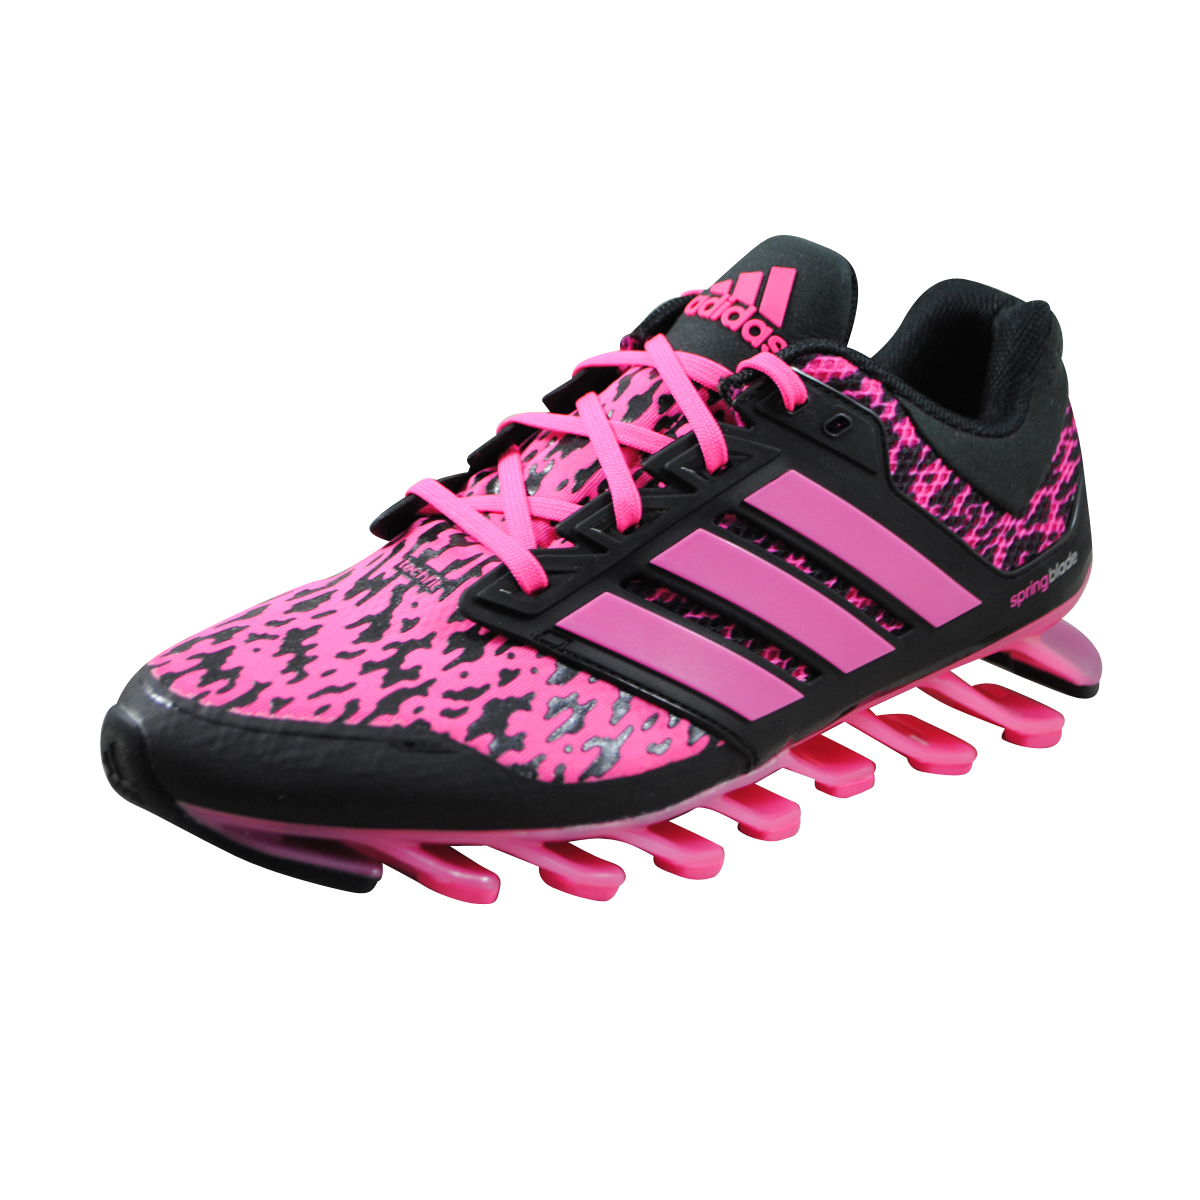 Adidas Supernova Sequence 5 - Womens Running Shoes - White ...